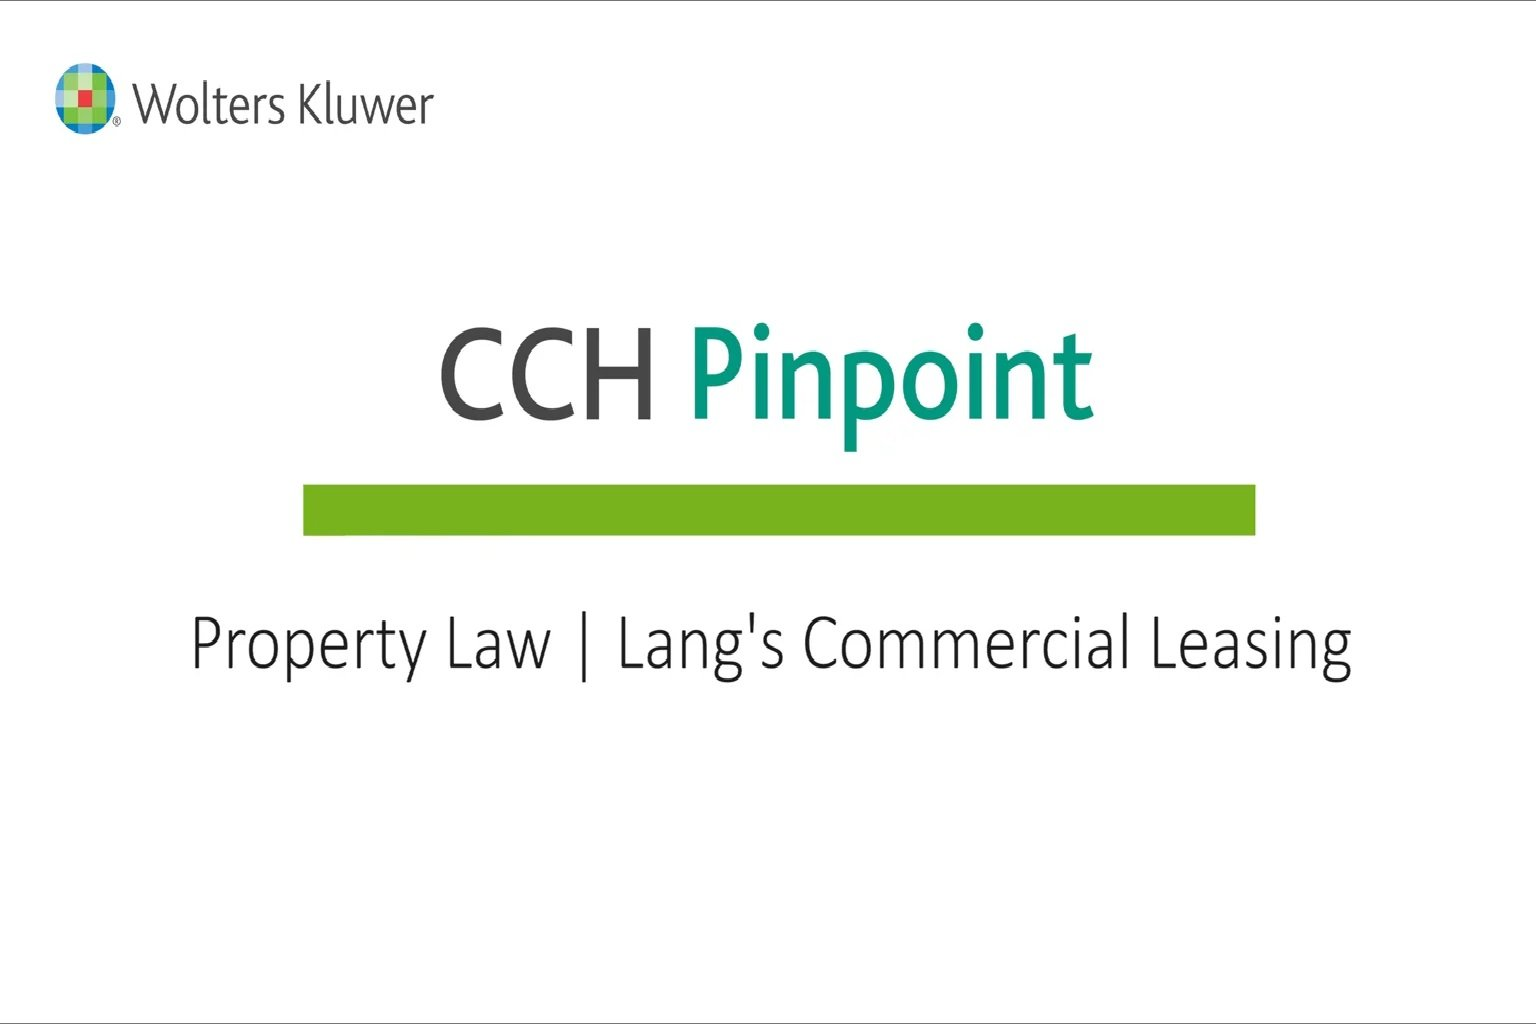 Property Law – Lang's Commercial Leasing